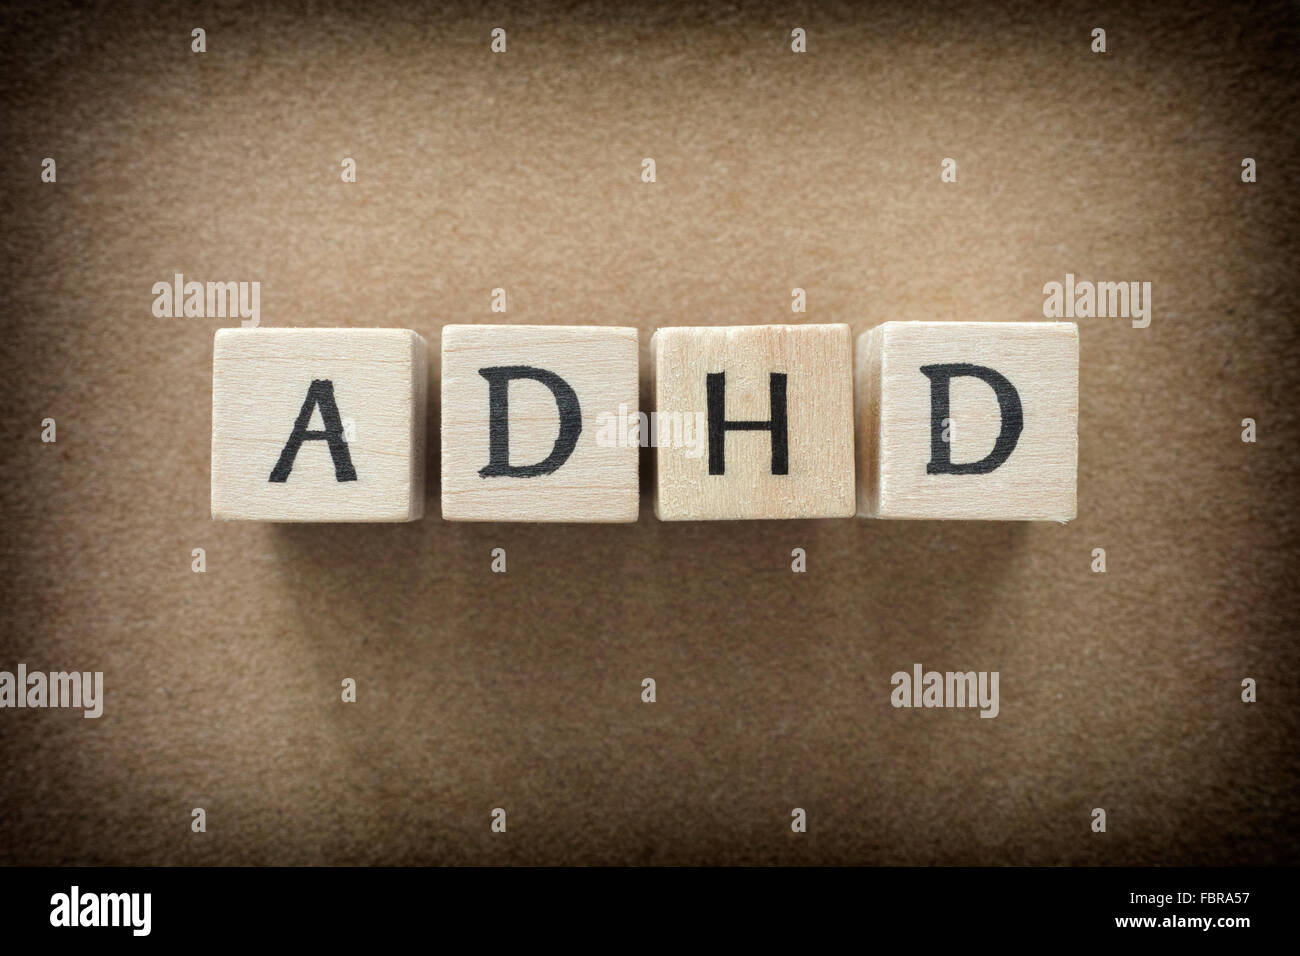 ADHD abbreviation on wooden blocks. ADHD is Attention deficit hyperactivity disorder. Close up. Vignette. - Stock Image